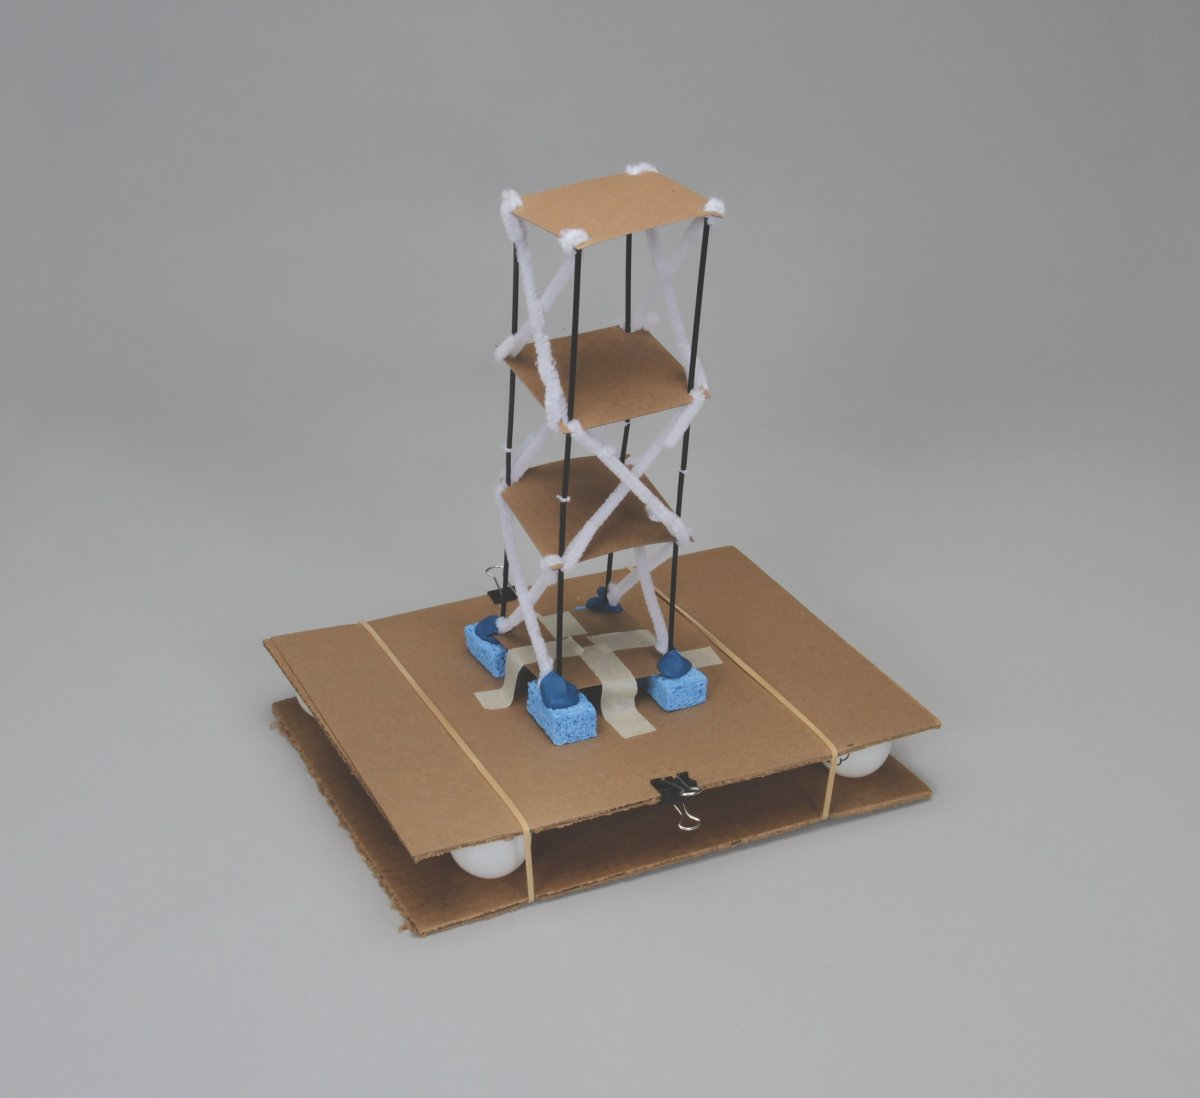 A model of an earthquake-resistant building made out of cardboard, pipe cleaners, and other classroom materials